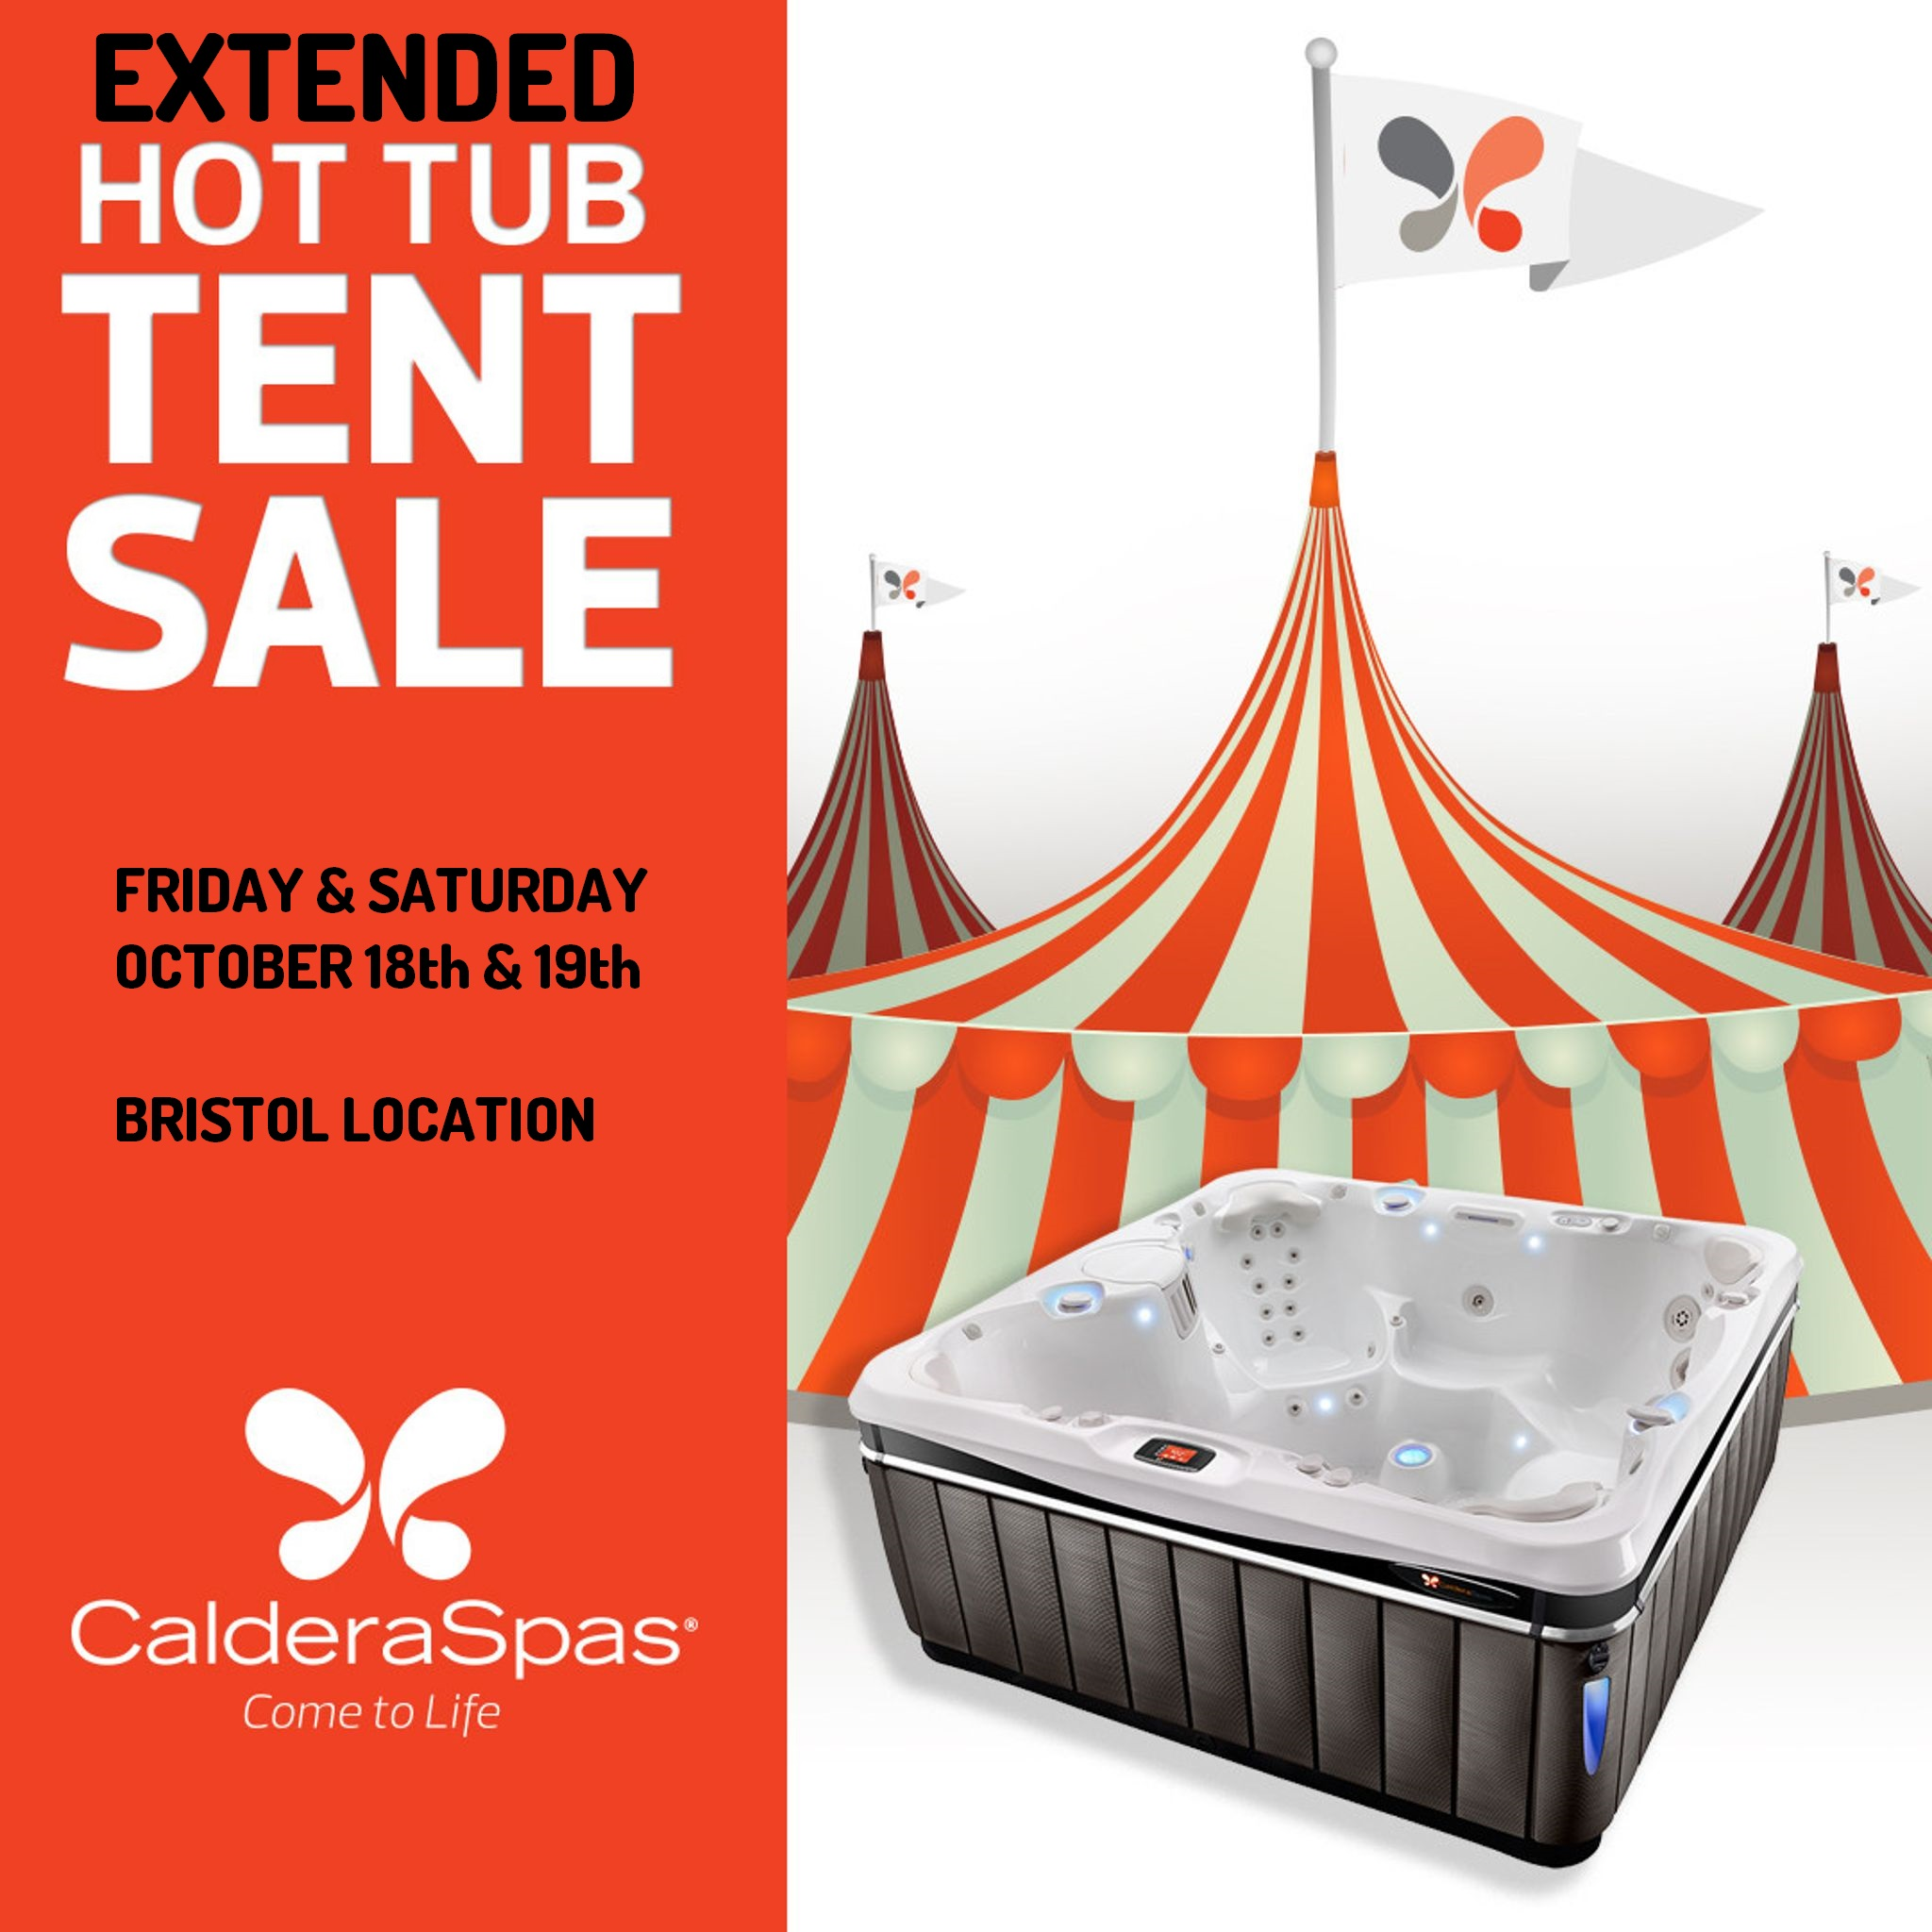 Hot Tub Tent Sale – EXTENDED!